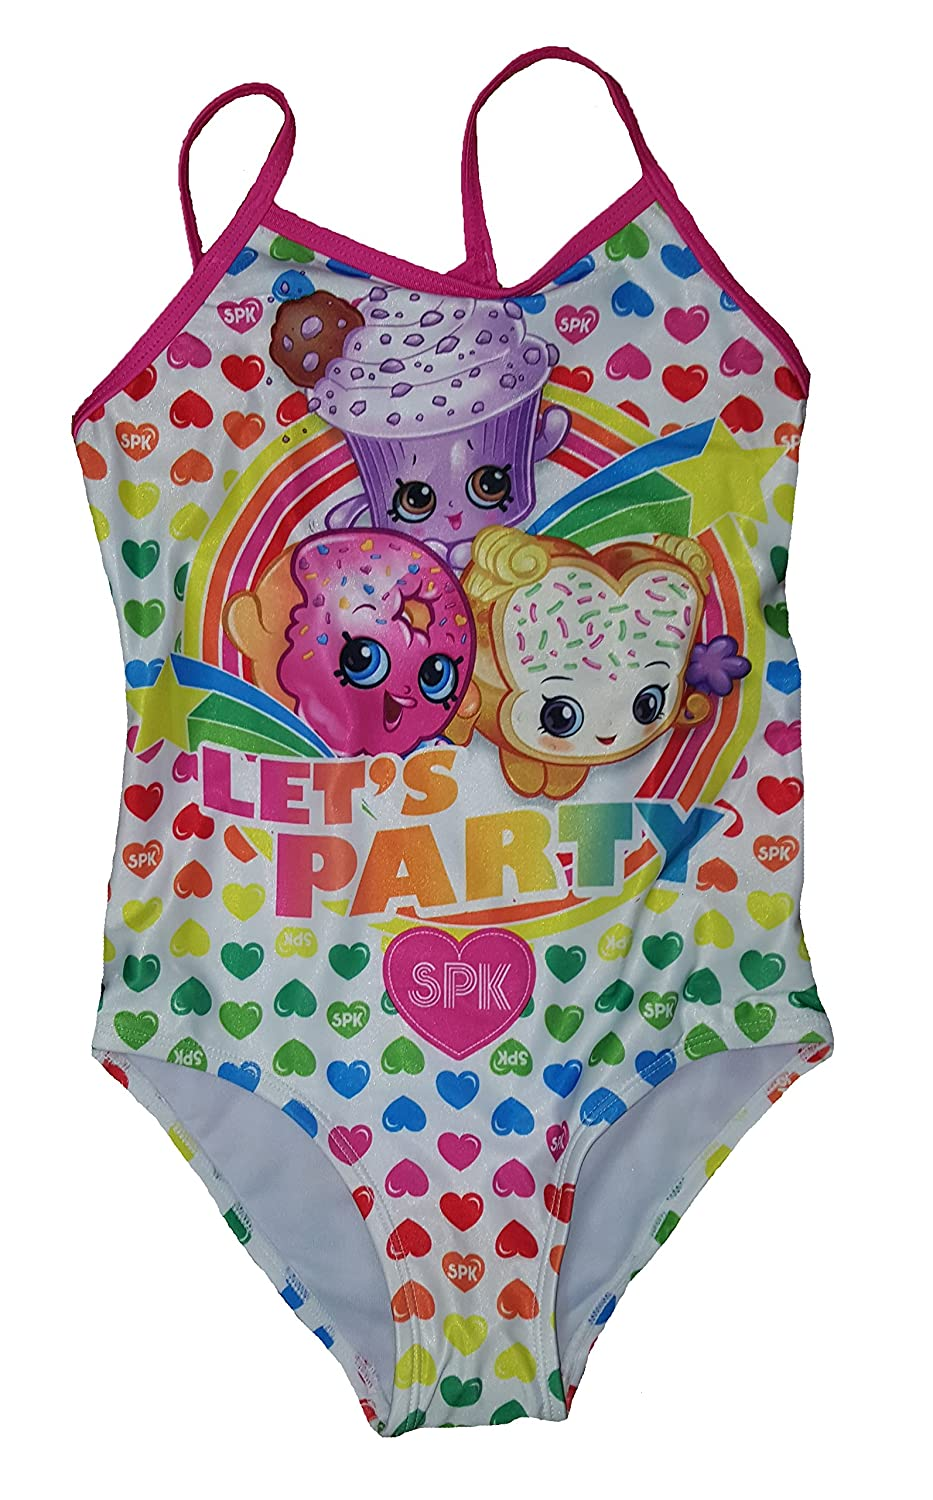 fff018f0f5fbd Amazon.com: Shopkins Girls Swim Suit Bathing Suit Lets Party One Piece:  Clothing